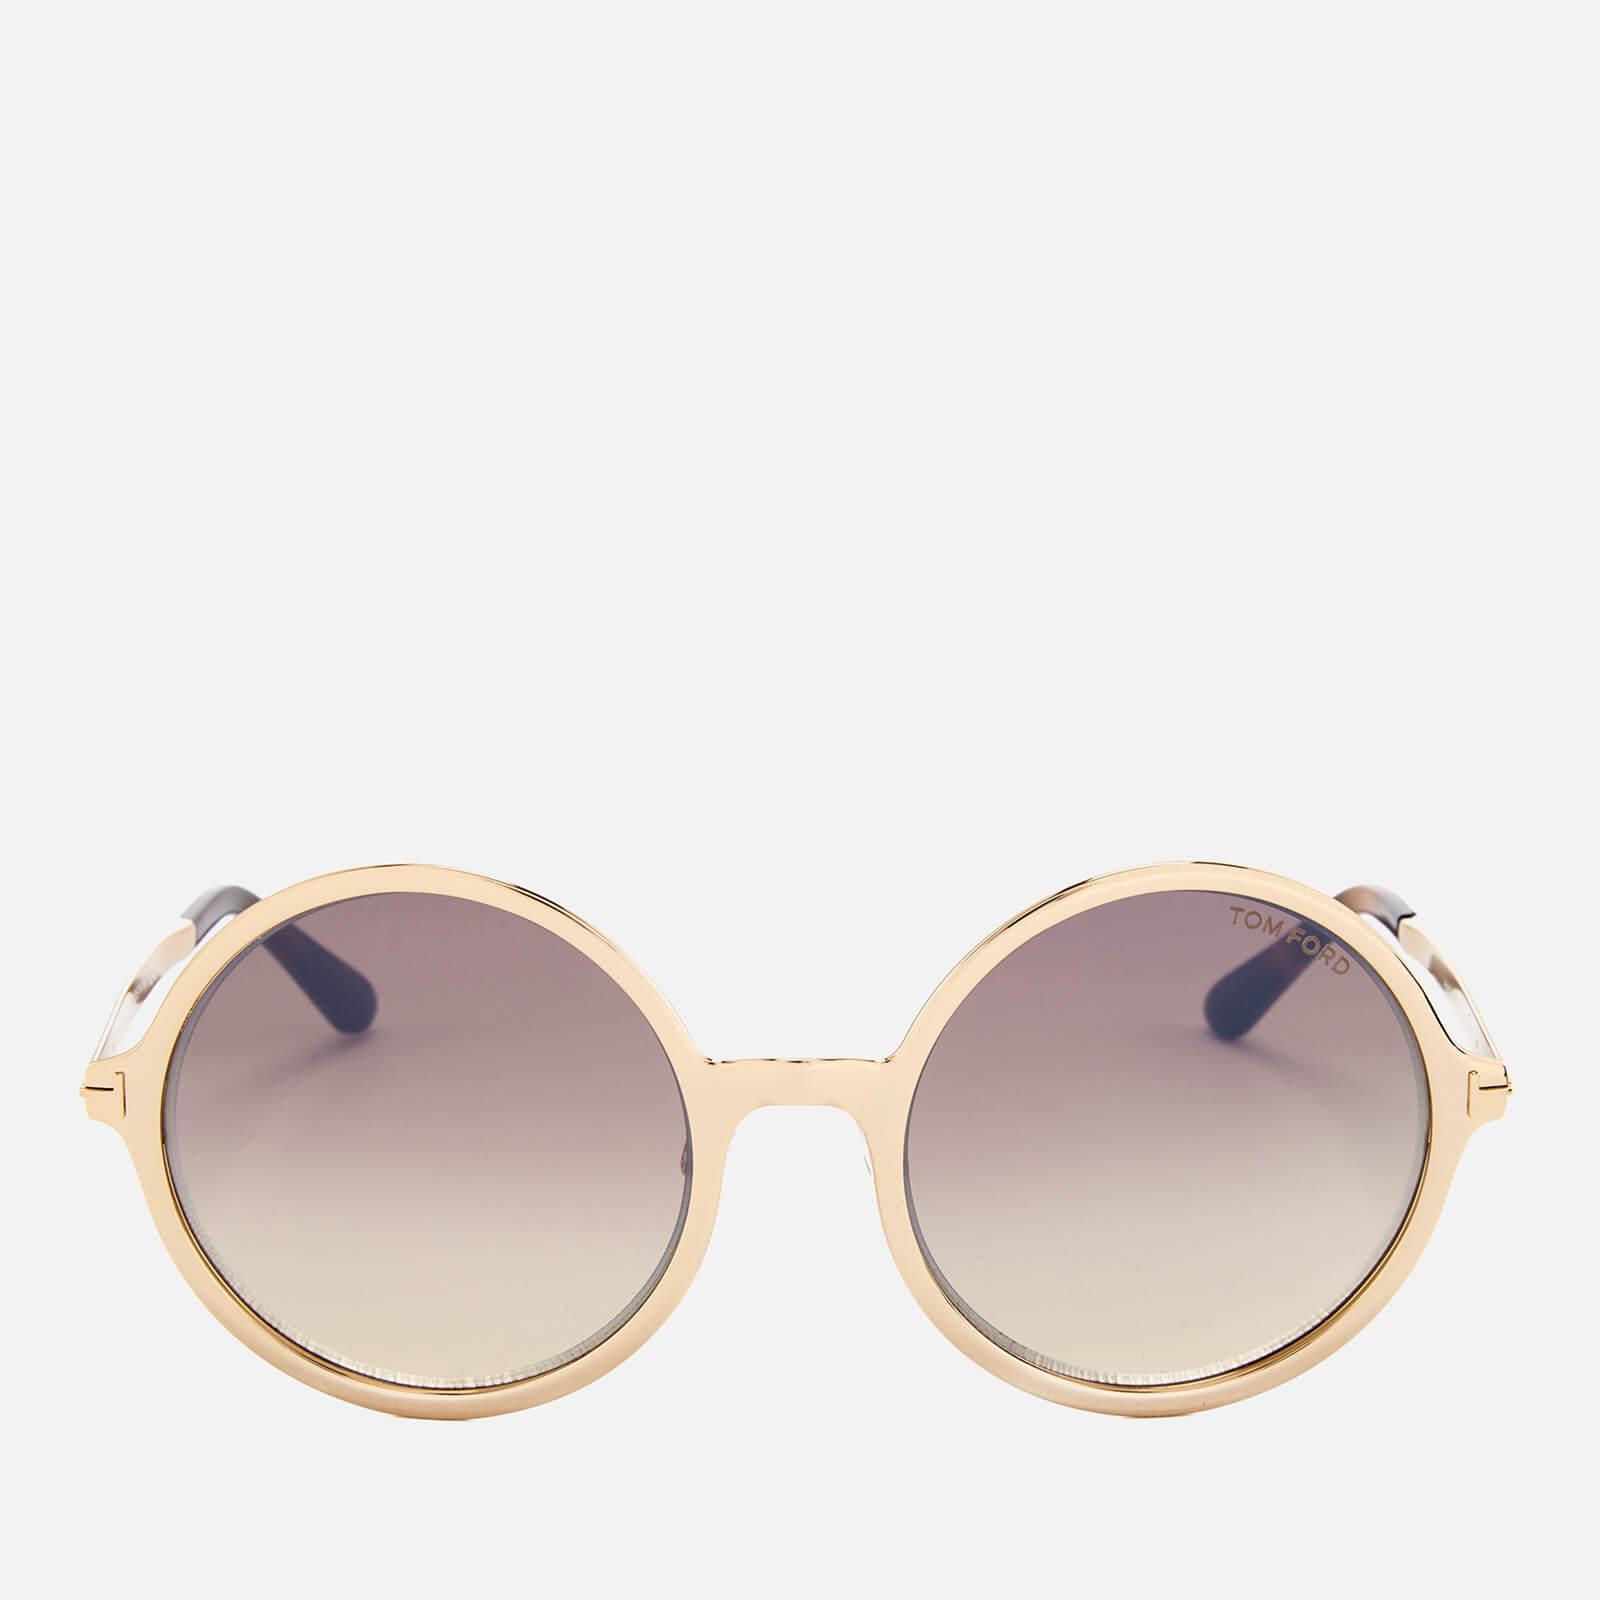 114a61e72ae5b Tom Ford Women s Ava Round Frame Sunglasses - Rose Gold Brown Mirror Womens  Accessories